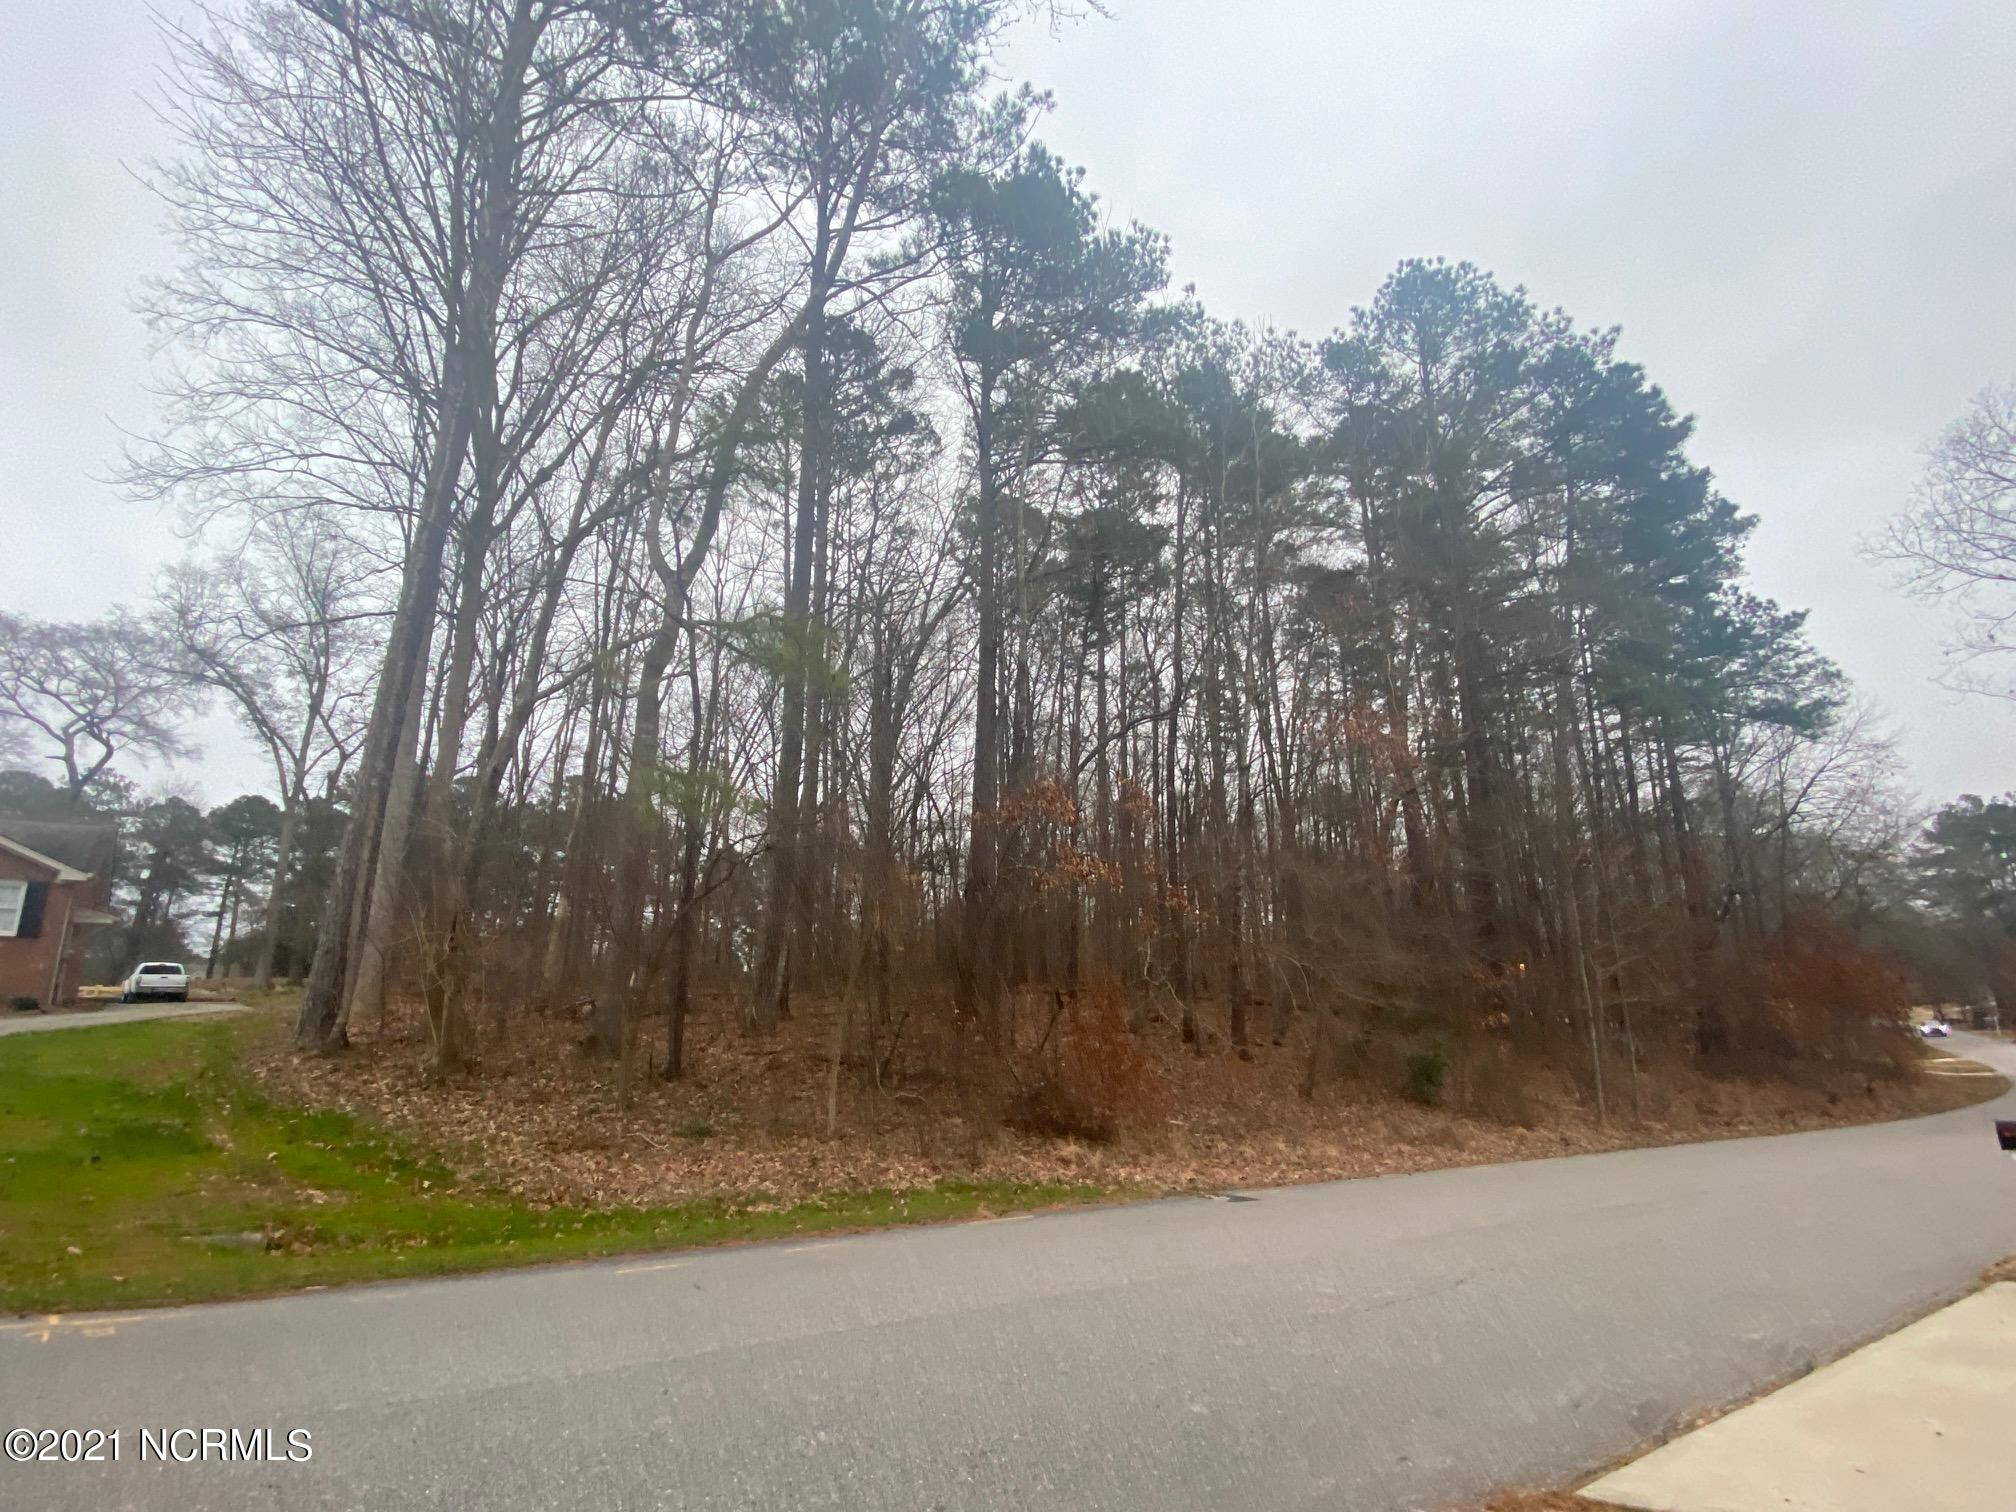 959 Keith Hills Road, Lillington, North Carolina 27546, ,Undeveloped,For sale,Keith Hills,100256637